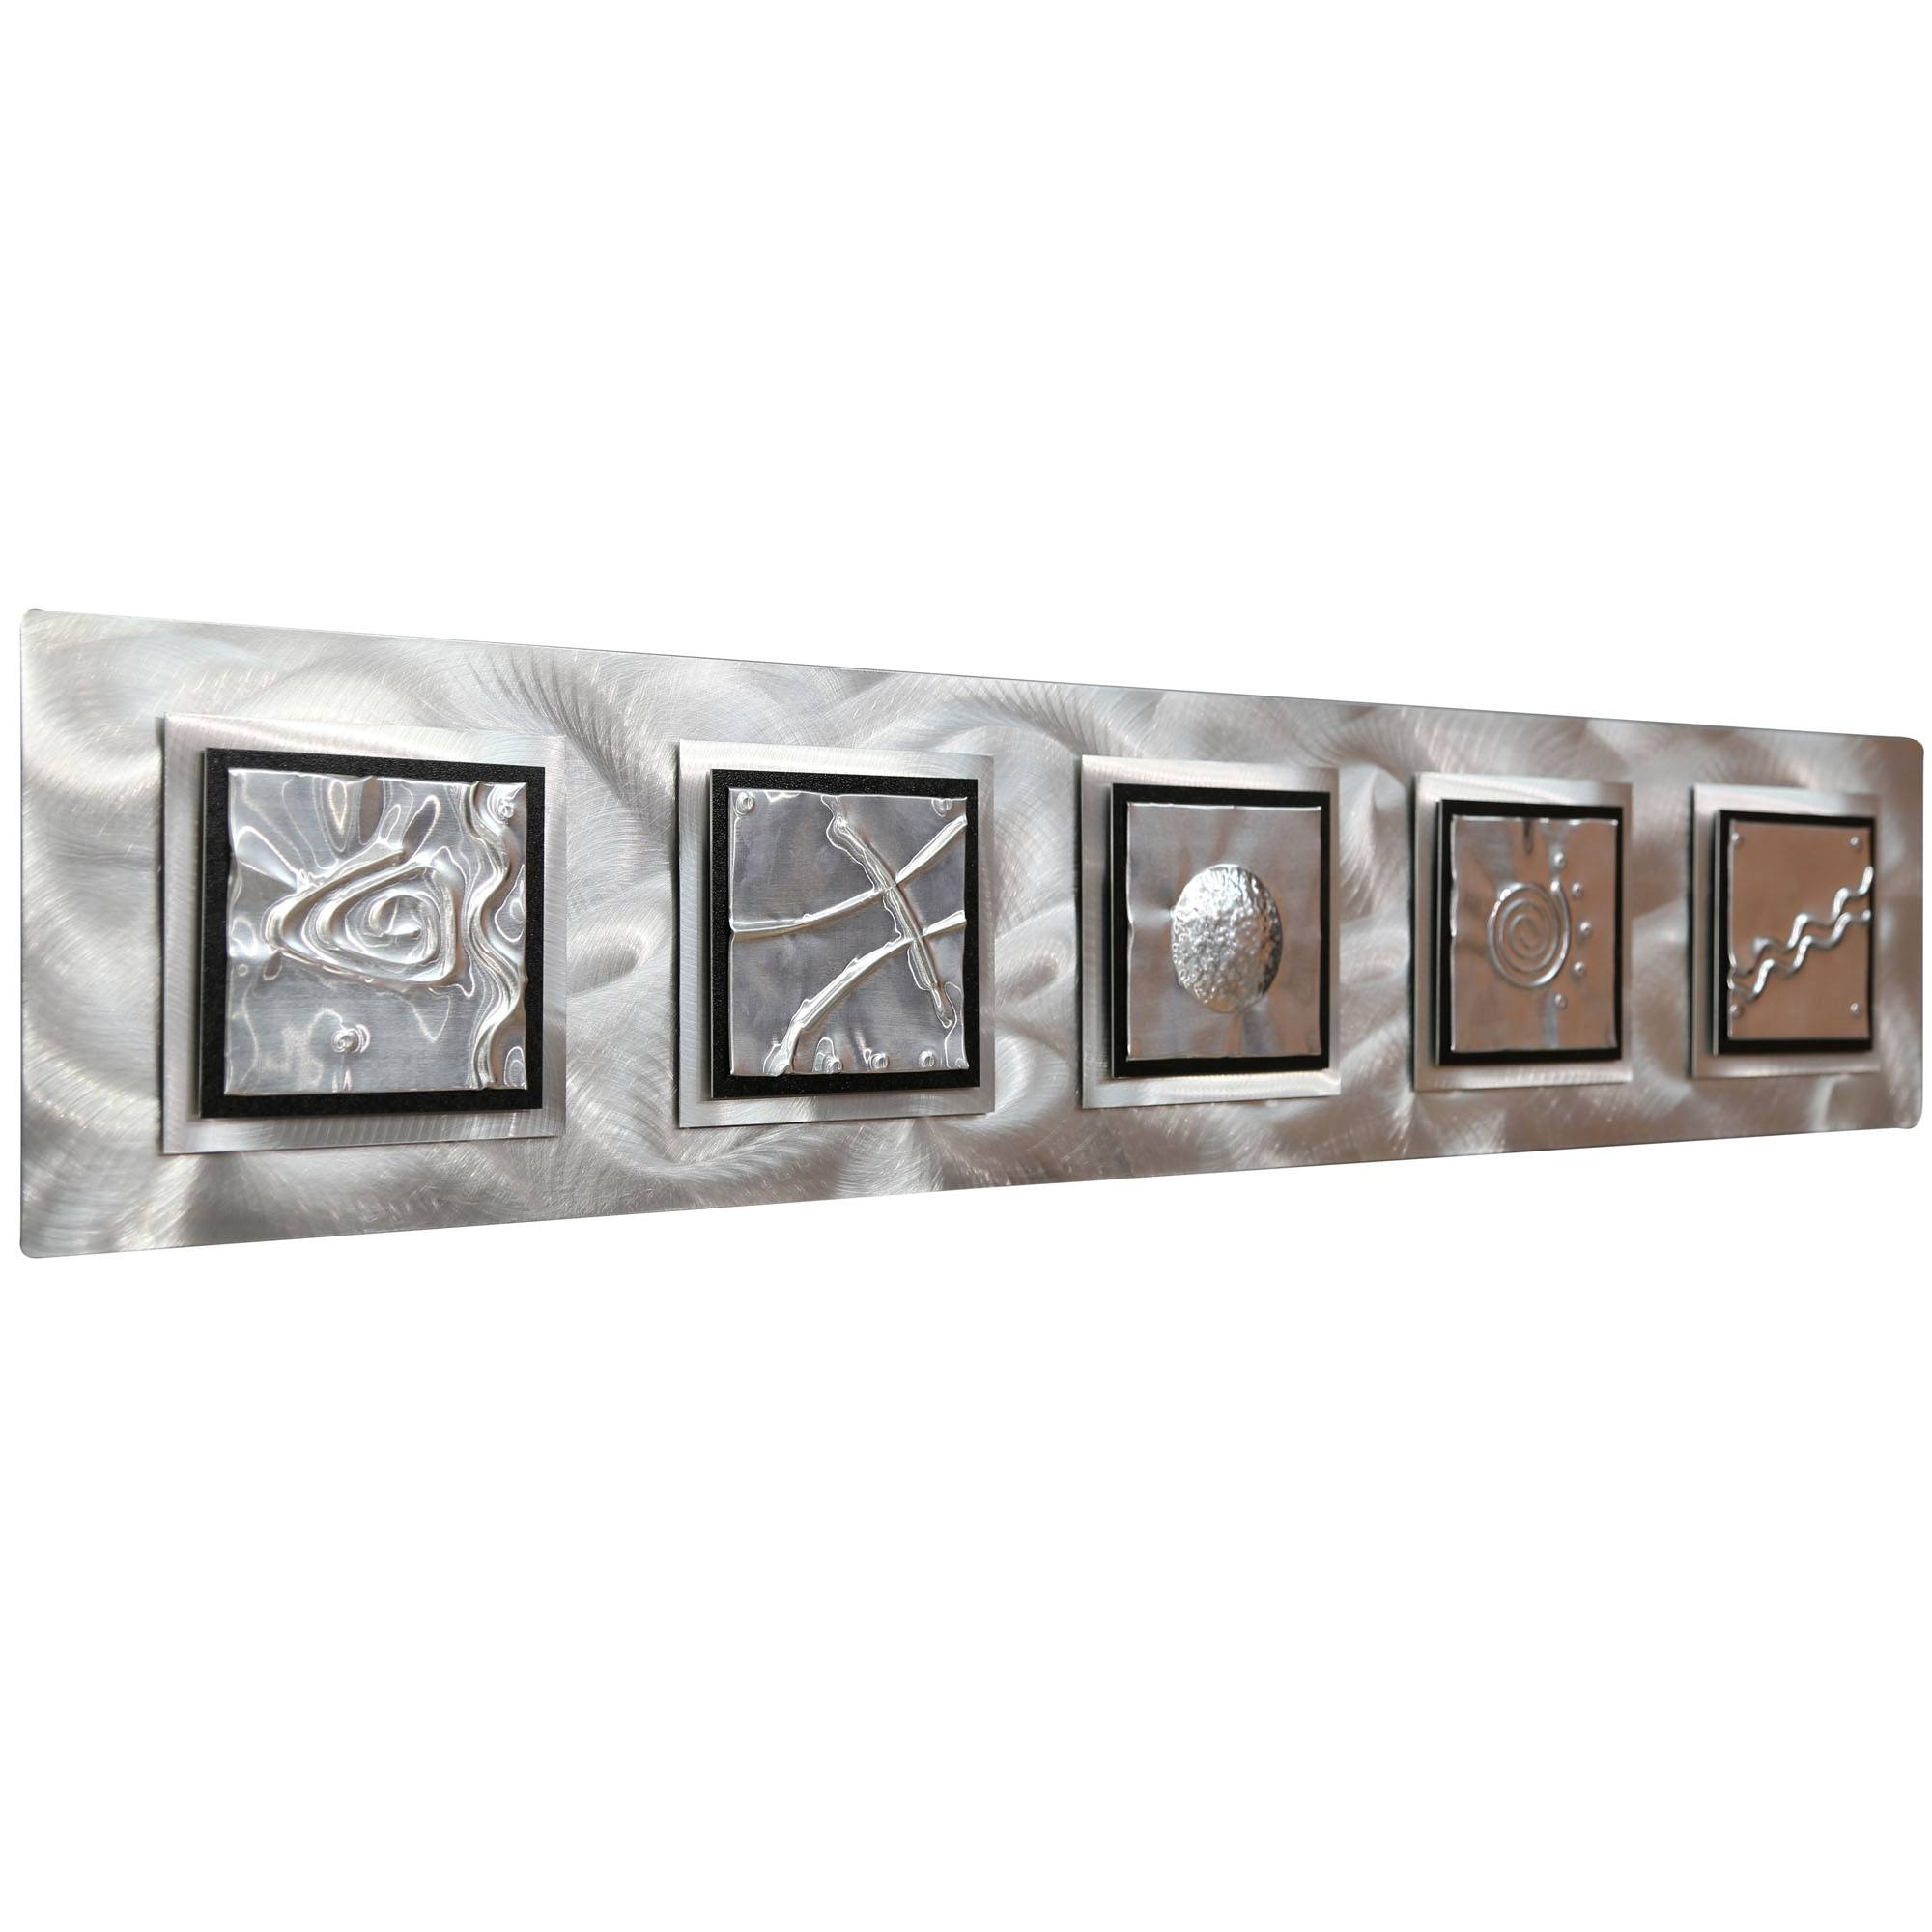 5 Elements – Silver/black Zen Metal Wall Art Accentjon Allen Regarding Most Recent Rectangular Metal Wall Art (View 15 of 20)